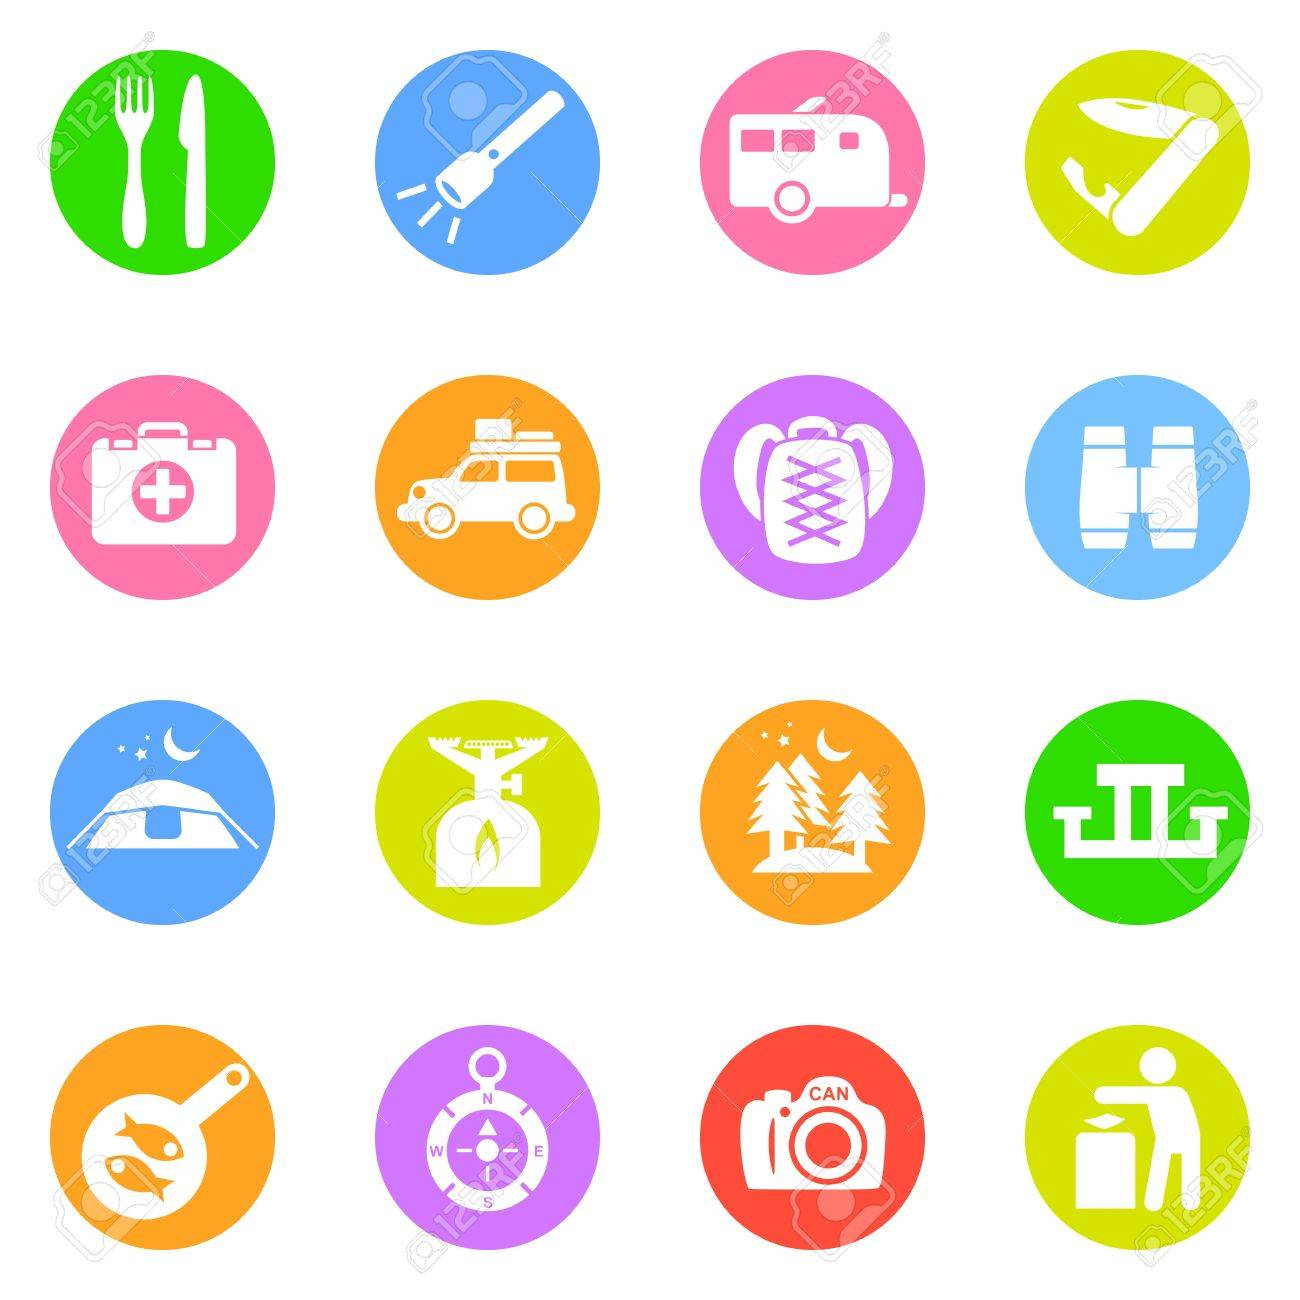 Camping icons in color circles isolated on white background. Stock Photo - 16915755